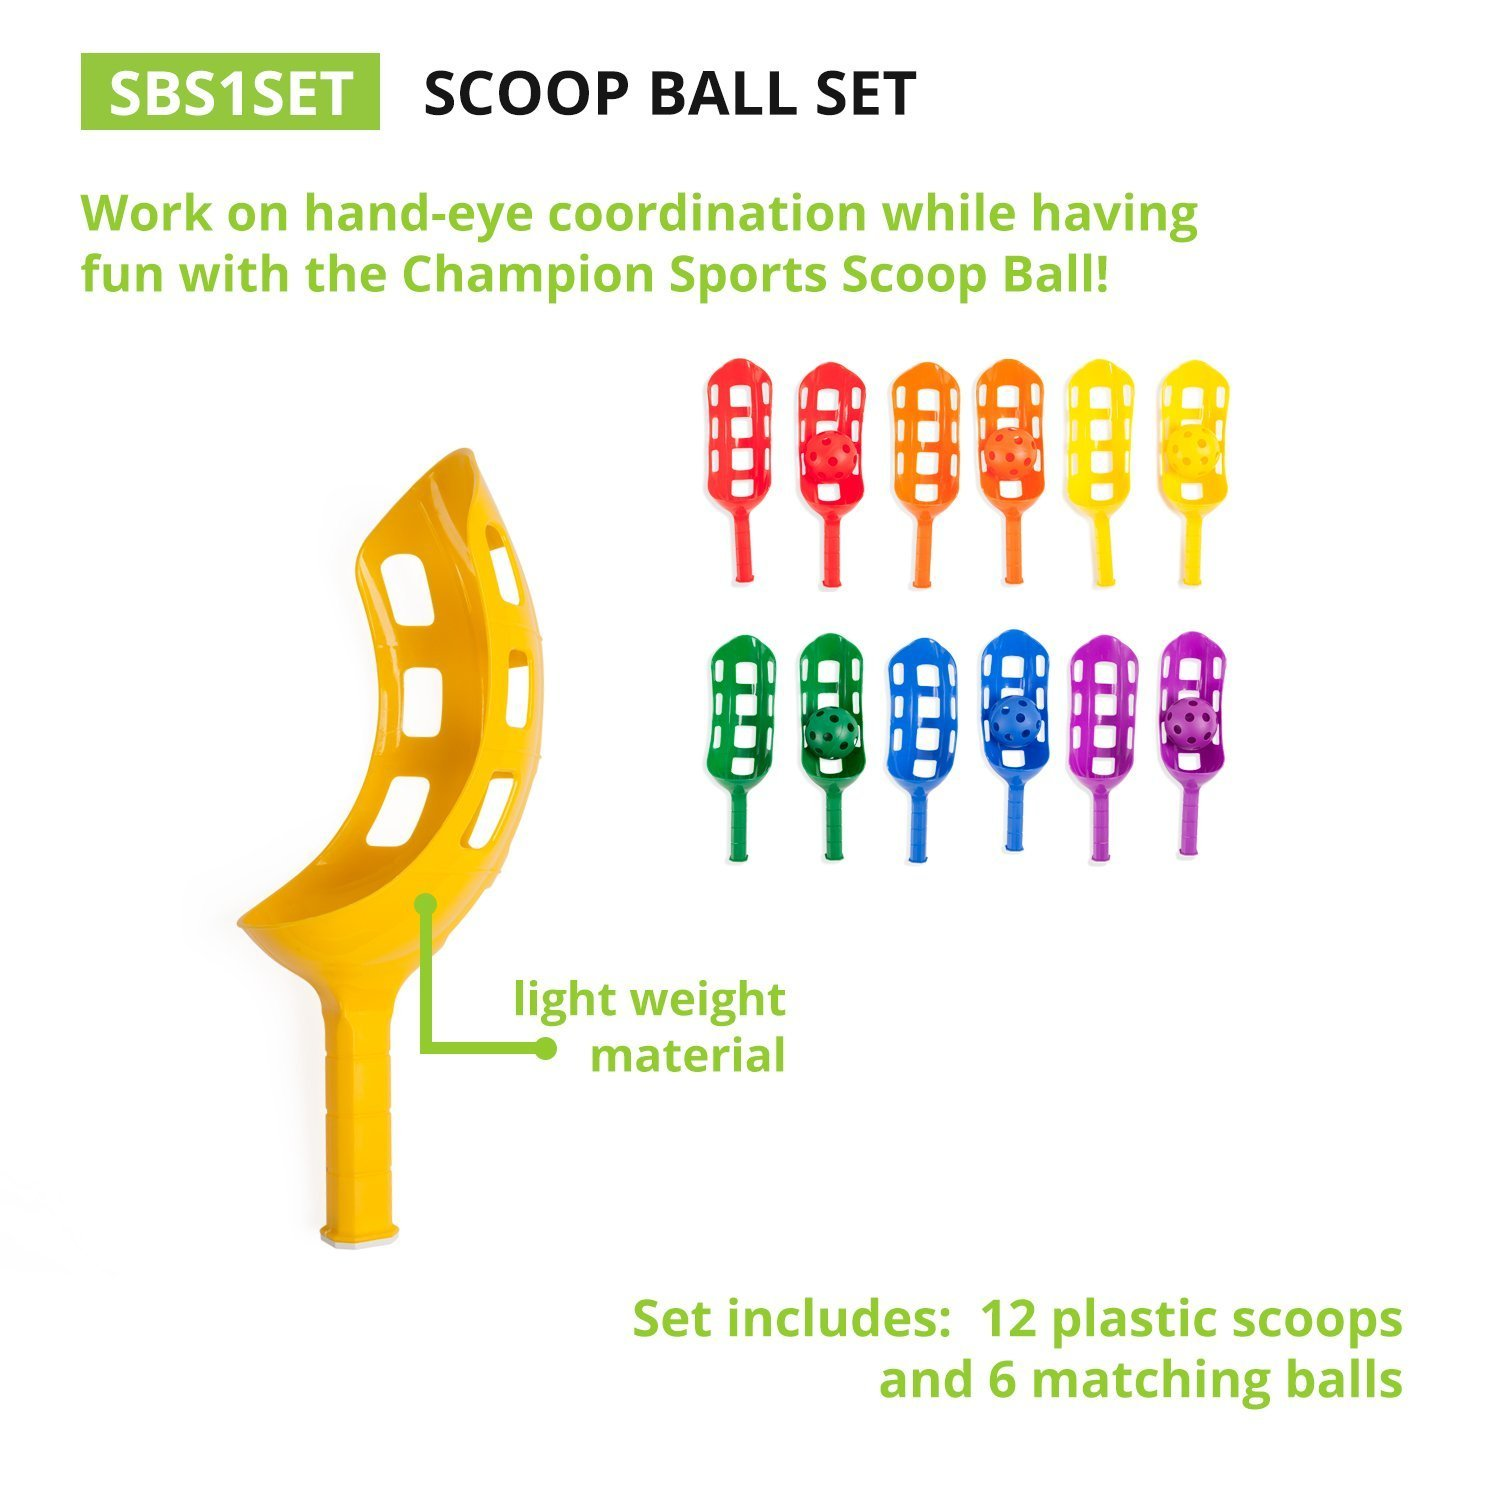 Champion Sports. Scoop Ball Set: Classic Outdoor Lawn Party & Kids Game in 6 Assorted Colors (Limited Edition) by Champion Sports. (Image #3)